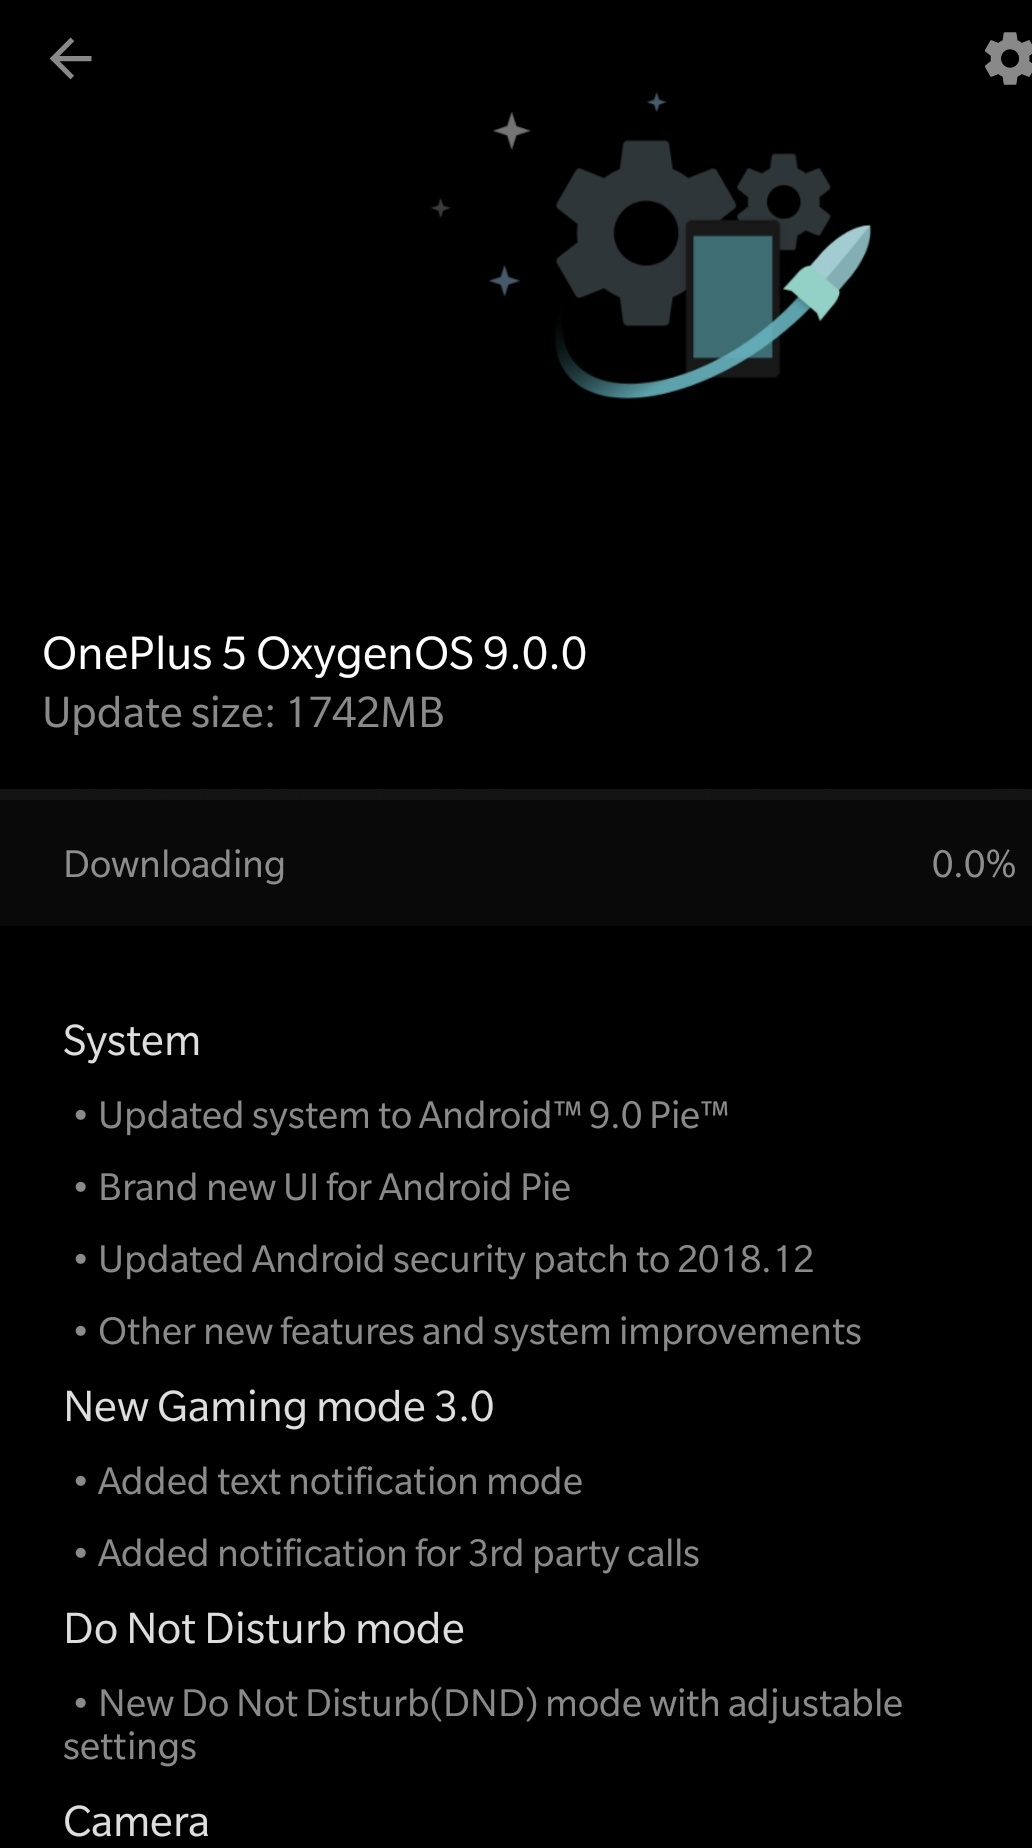 OxygenOS 9.0.0 for OnePlus 5 Changelog